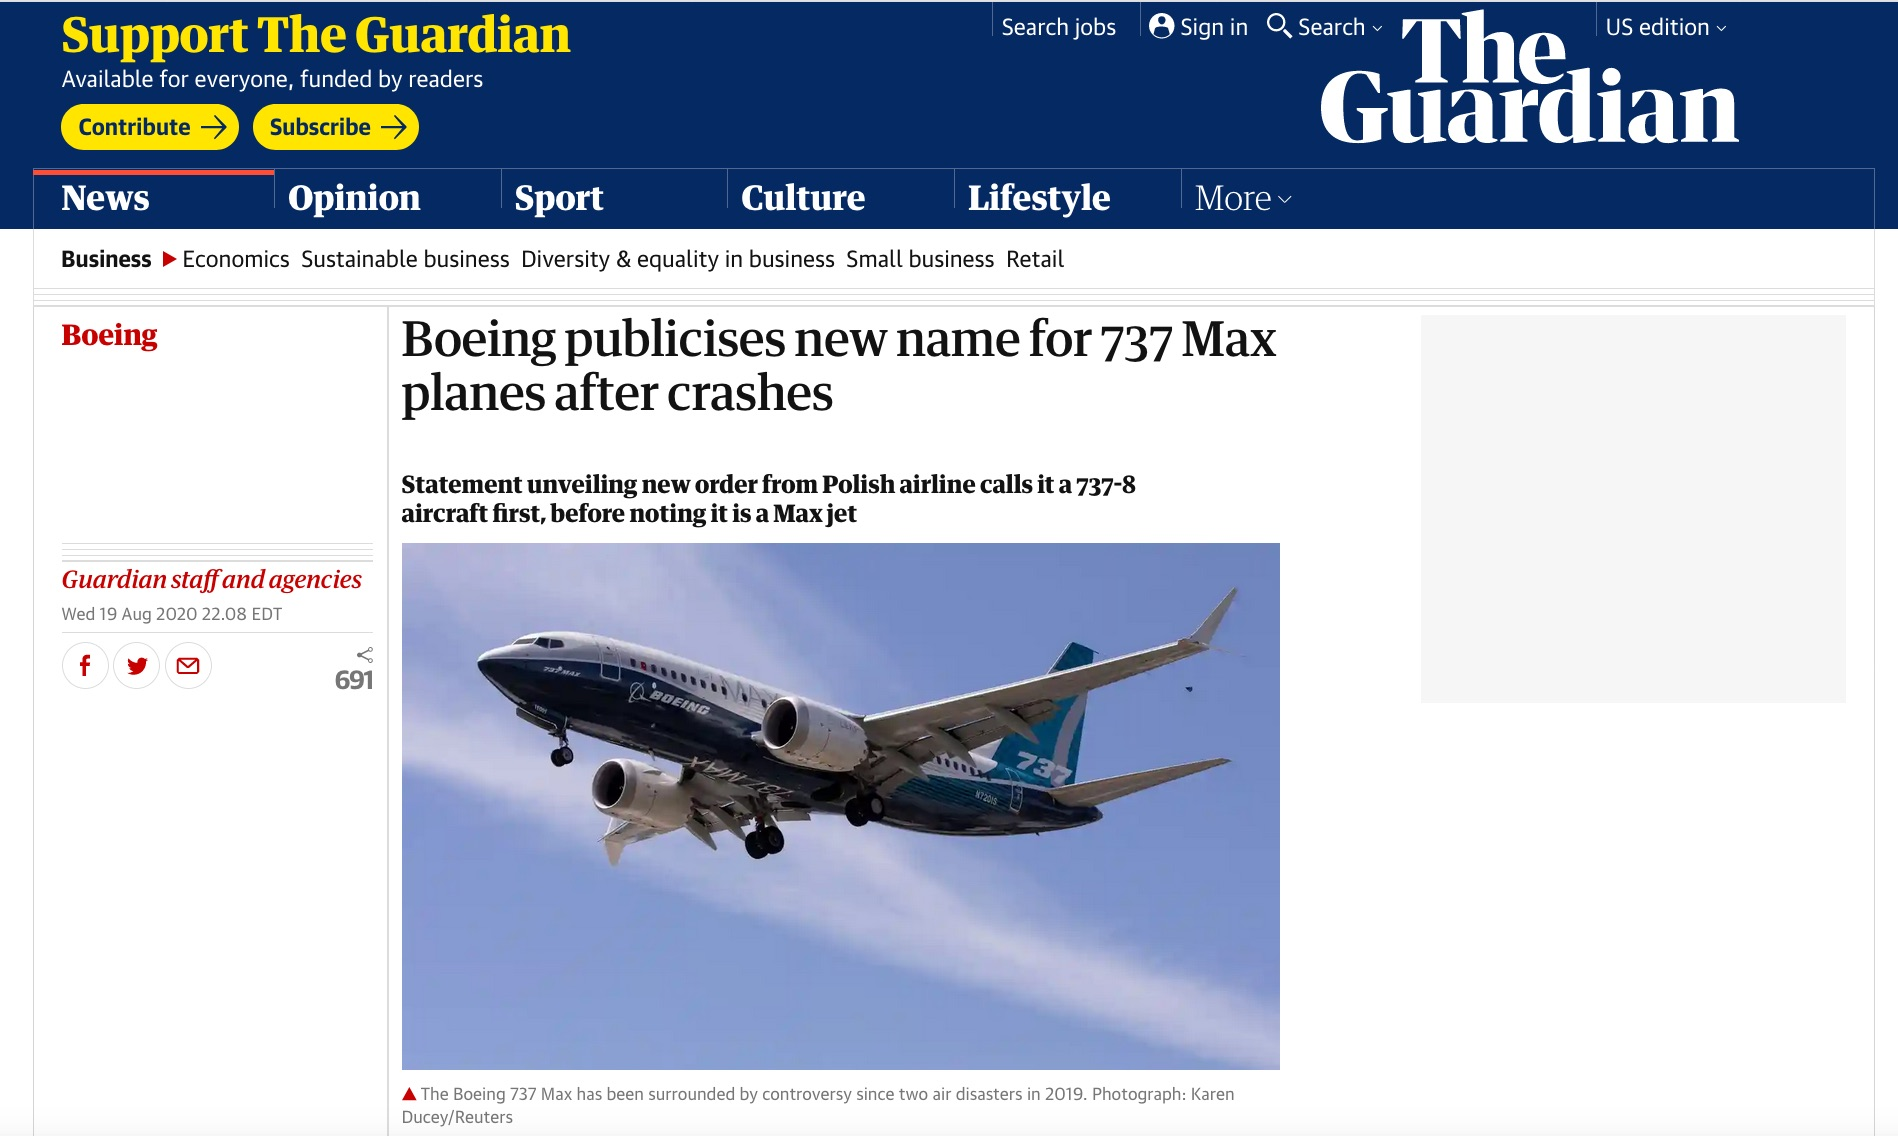 Boeing publicises new name for 737 Max planes after crashes, for Getty Images, published in The Guardian, August 19, 2020.